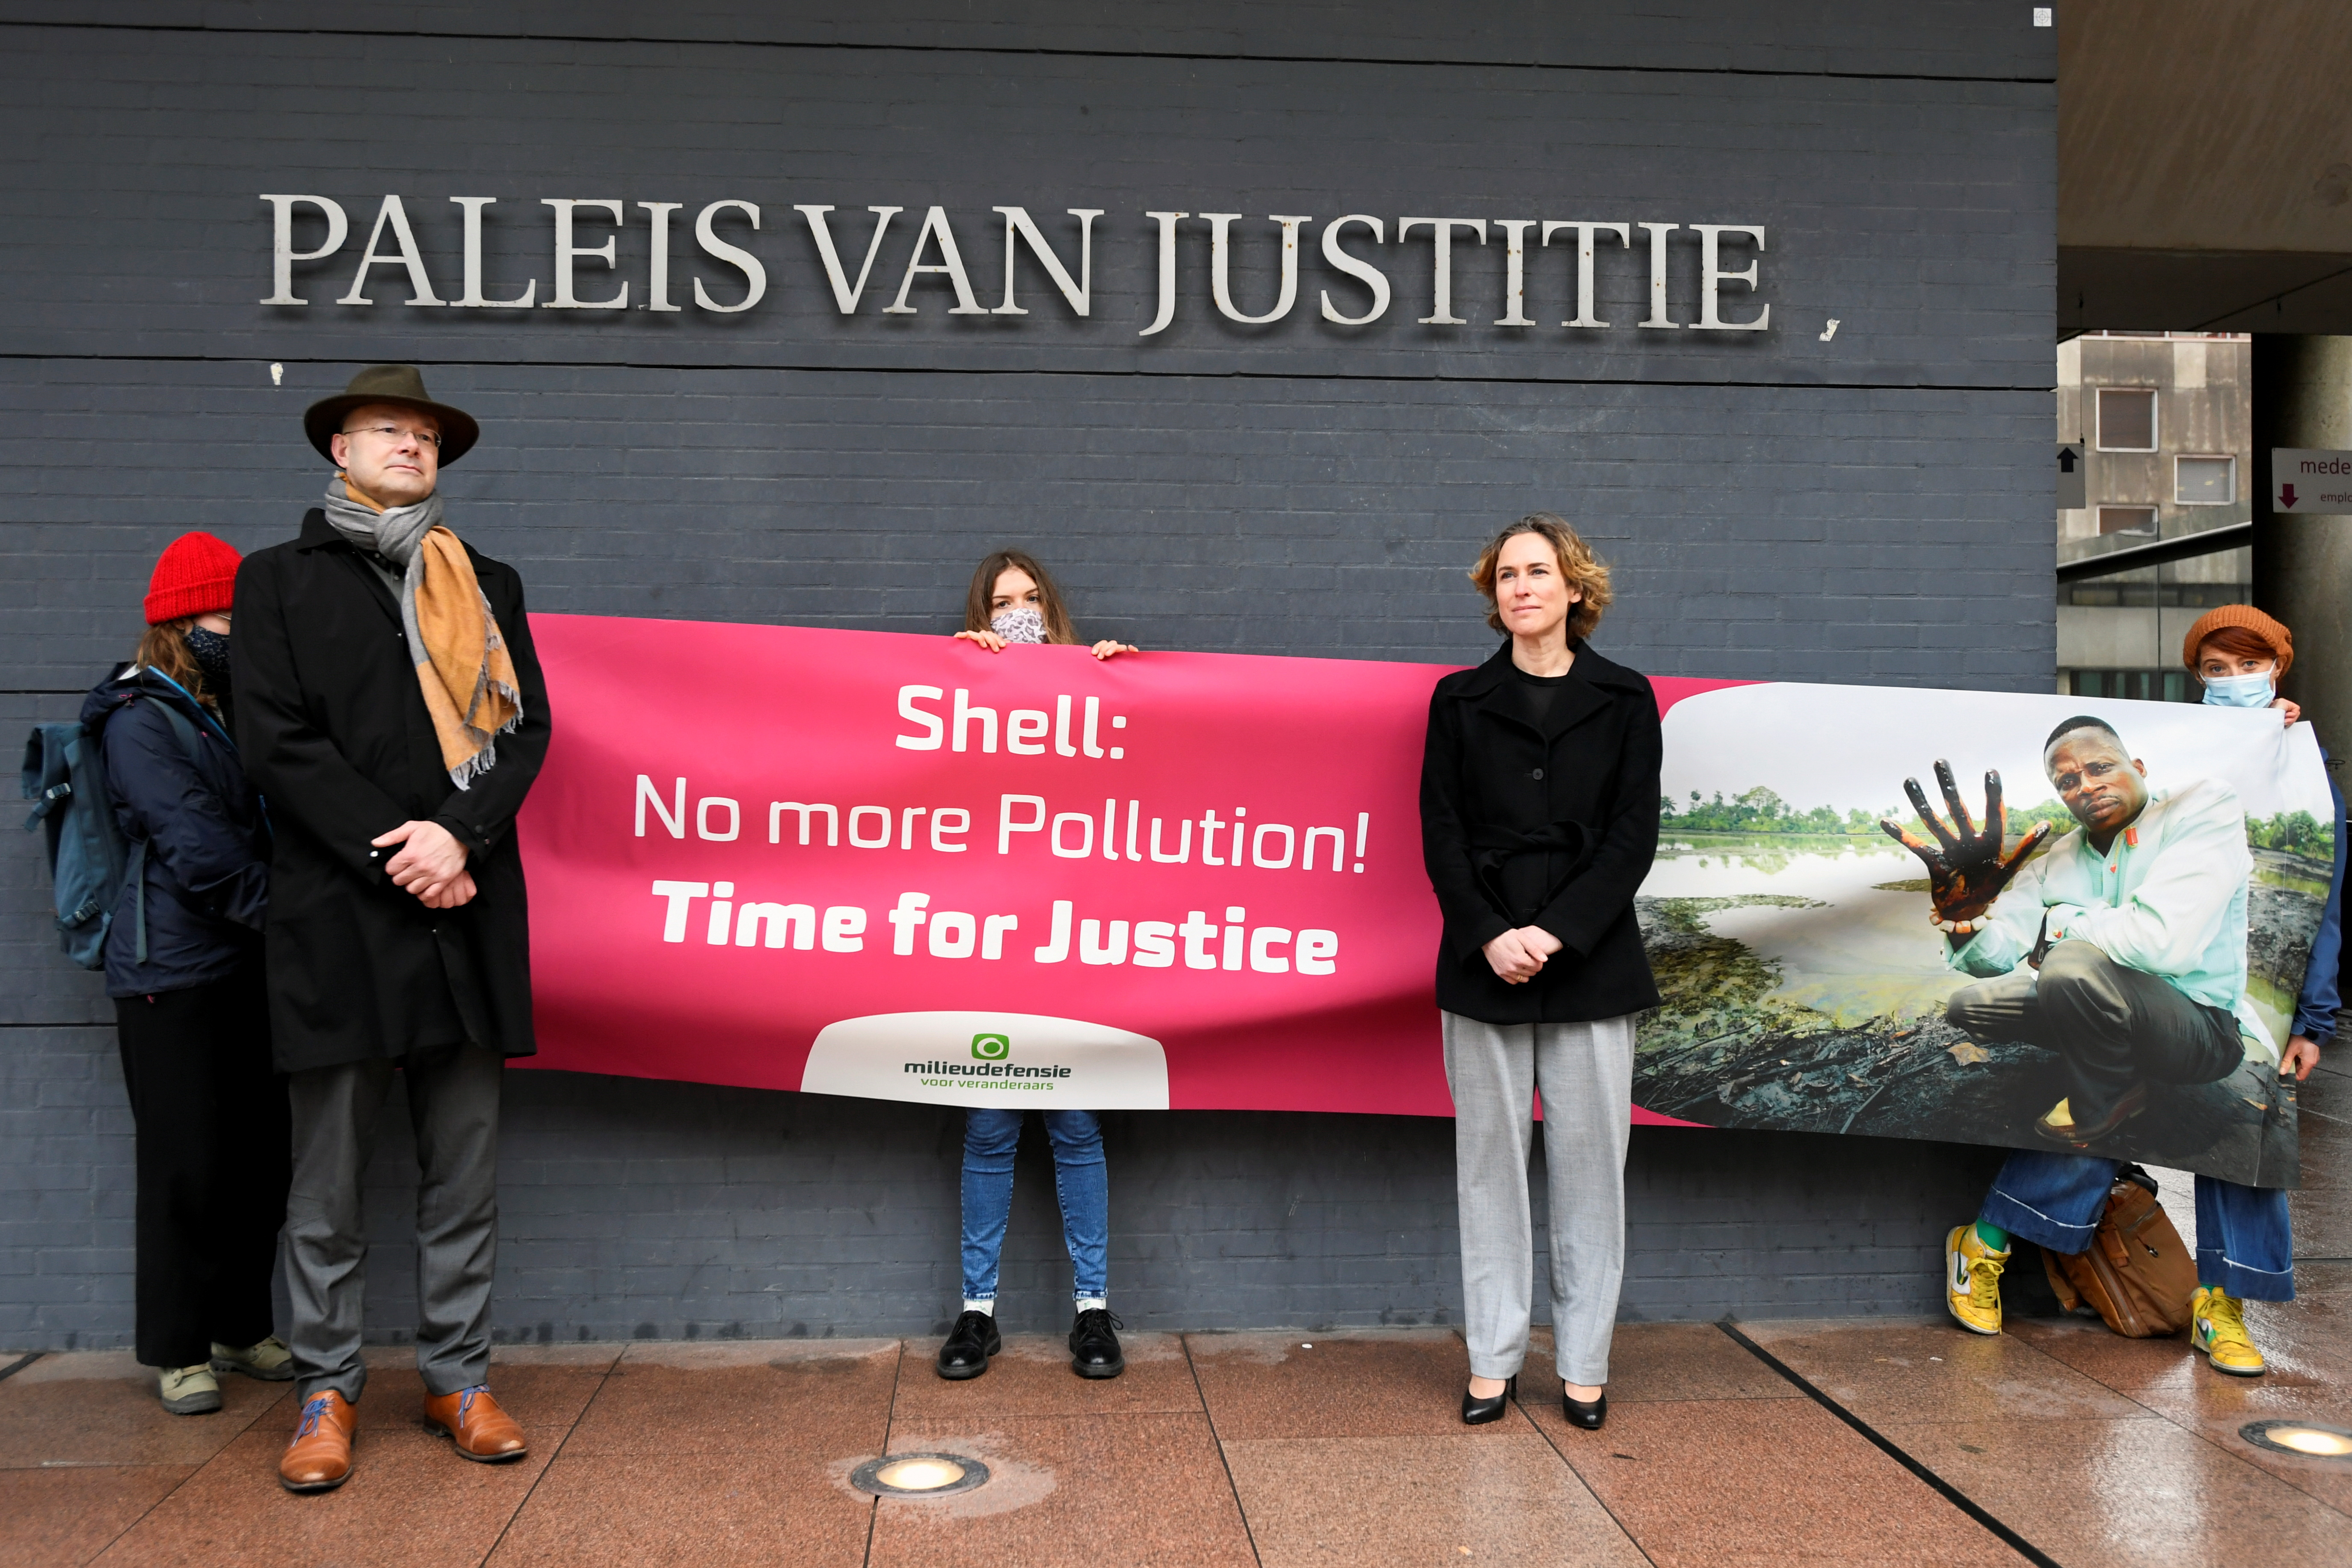 Donald Pols, Director of Milieudefensie, and Channa Samkalden, lawyer of Nigerian farmers and Milieudefensie, pose for a picture outside a Dutch appeals court ahead of the verdict in a case over oil major Shell's responsibility for oil pollution in the Niger Delta, in the Hague, Netherlands January 29, 2021. REUTERS/Piroschka Van De Wouw